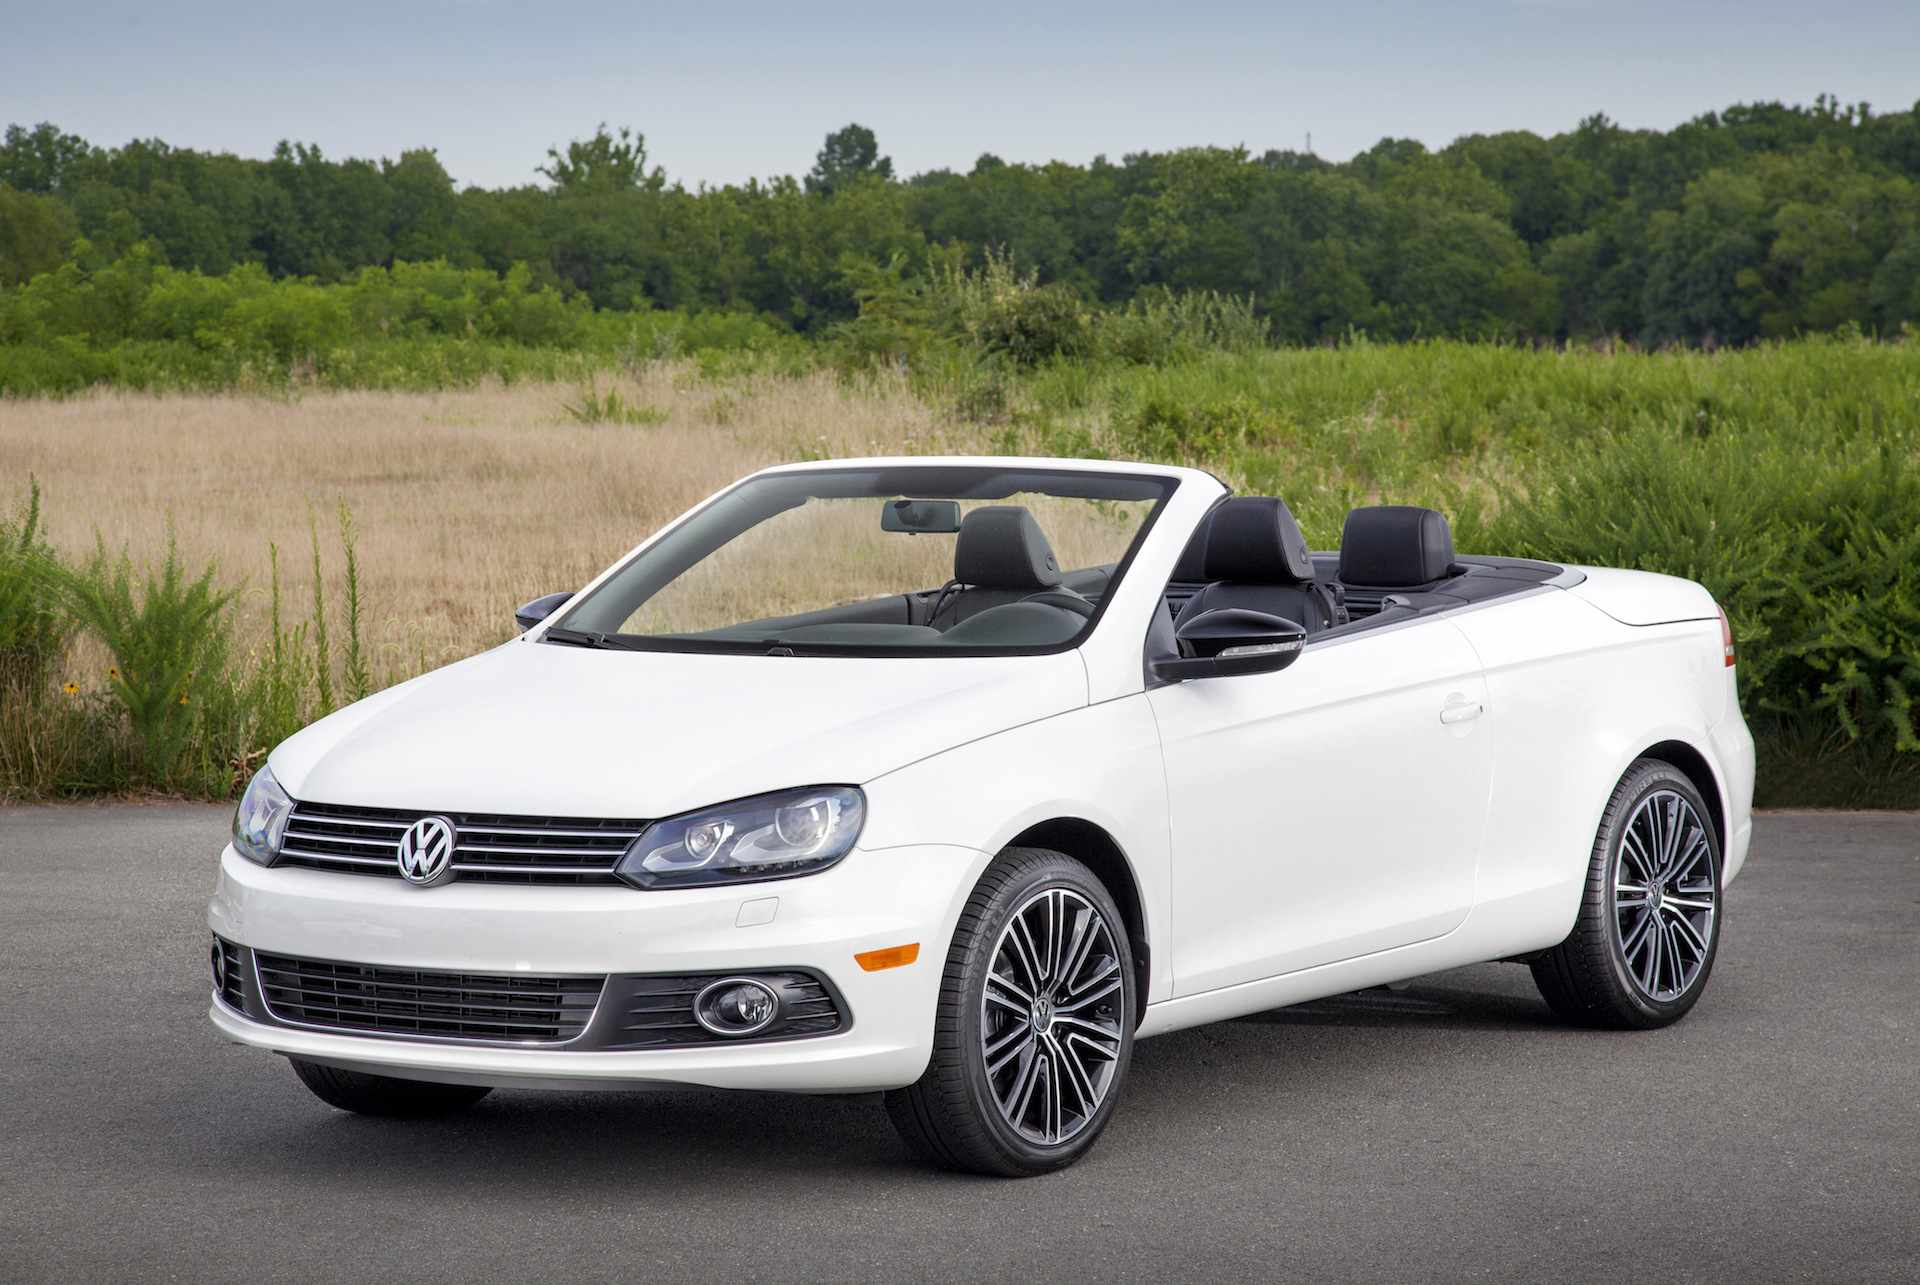 2016 volkswagen eos vw review ratings specs prices. Black Bedroom Furniture Sets. Home Design Ideas